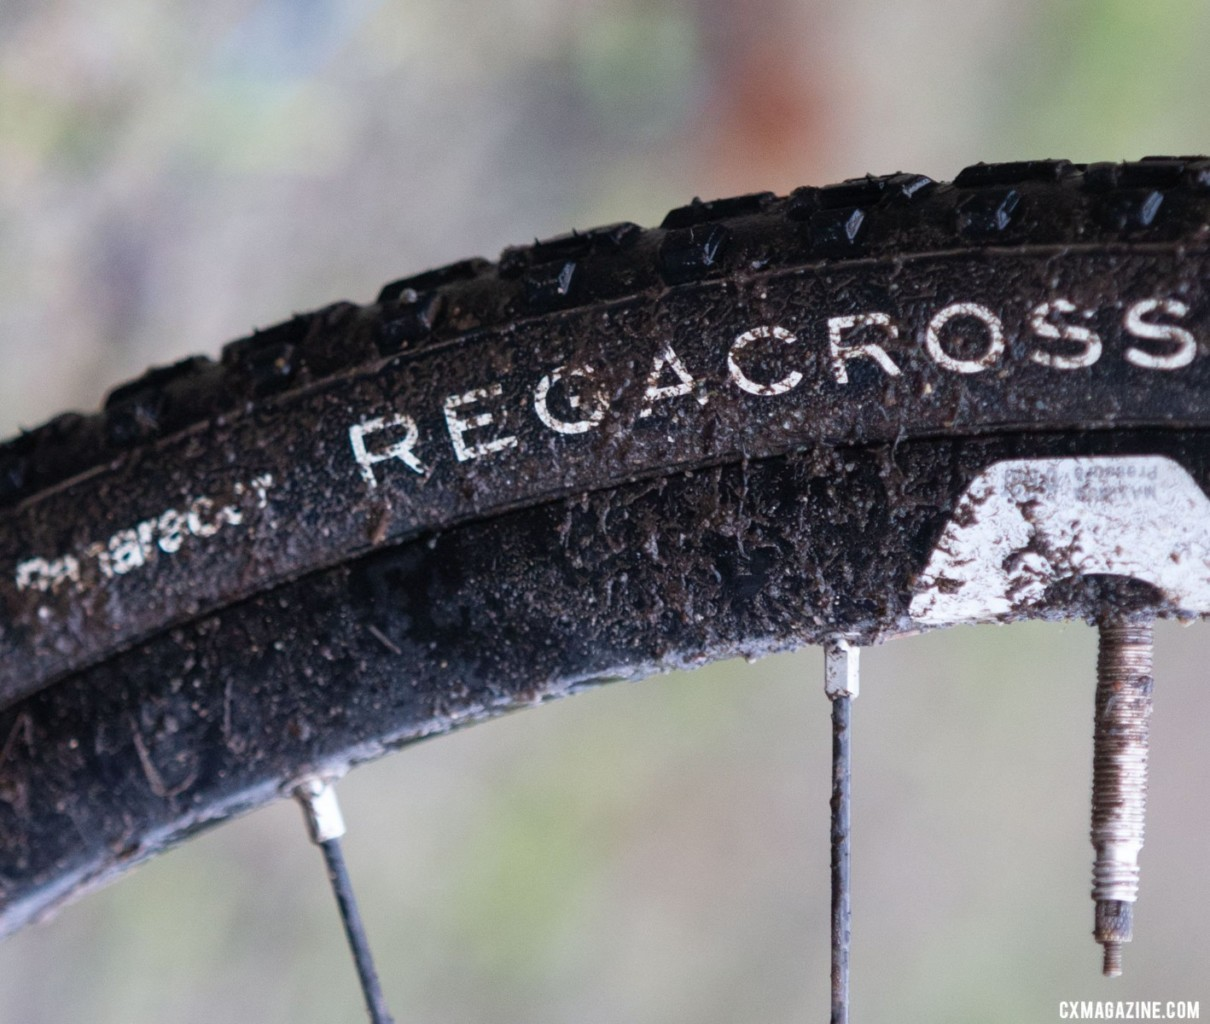 Cameron ran her 700c x 33mm Panaracer REGACROSS tires with butyl tubes. Emily Cameron's Collegiate Club Women-winning Giant TCX cyclocross bike. 2019 USA Cycling Cyclocross National Championships bike profiles, Lakewood, WA. Photo: © A. Yee / Cyclocross Magazine